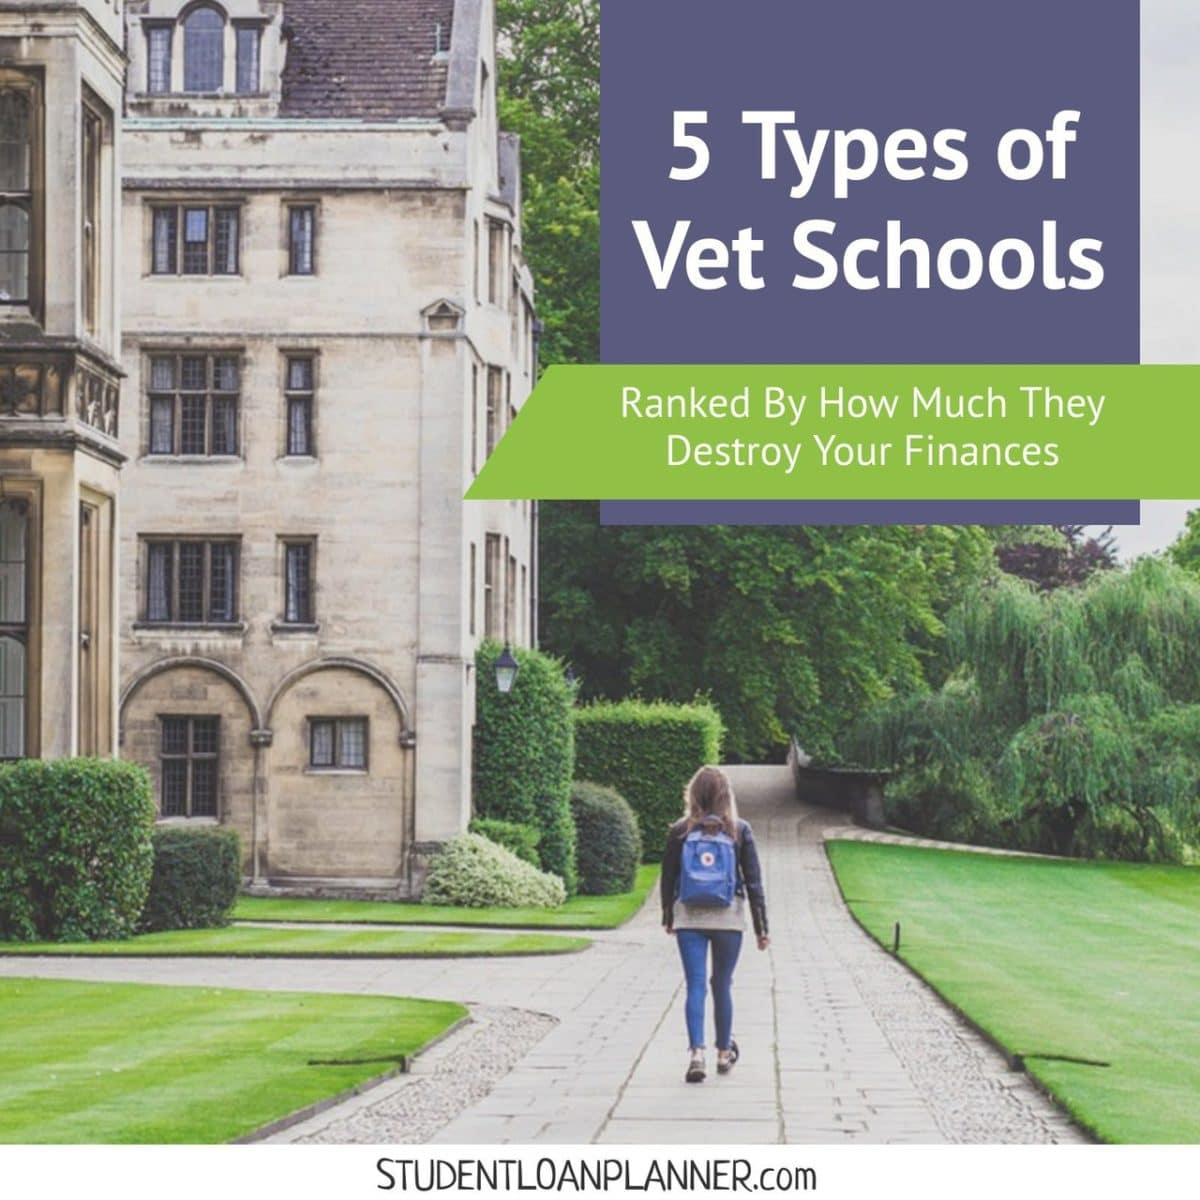 Two #vets went to different schools. One owes $150,000 while the other owes $400,000.Same education, more money.Here are the five types of vet schools ranked by how much they will destroy your finances after graduation.